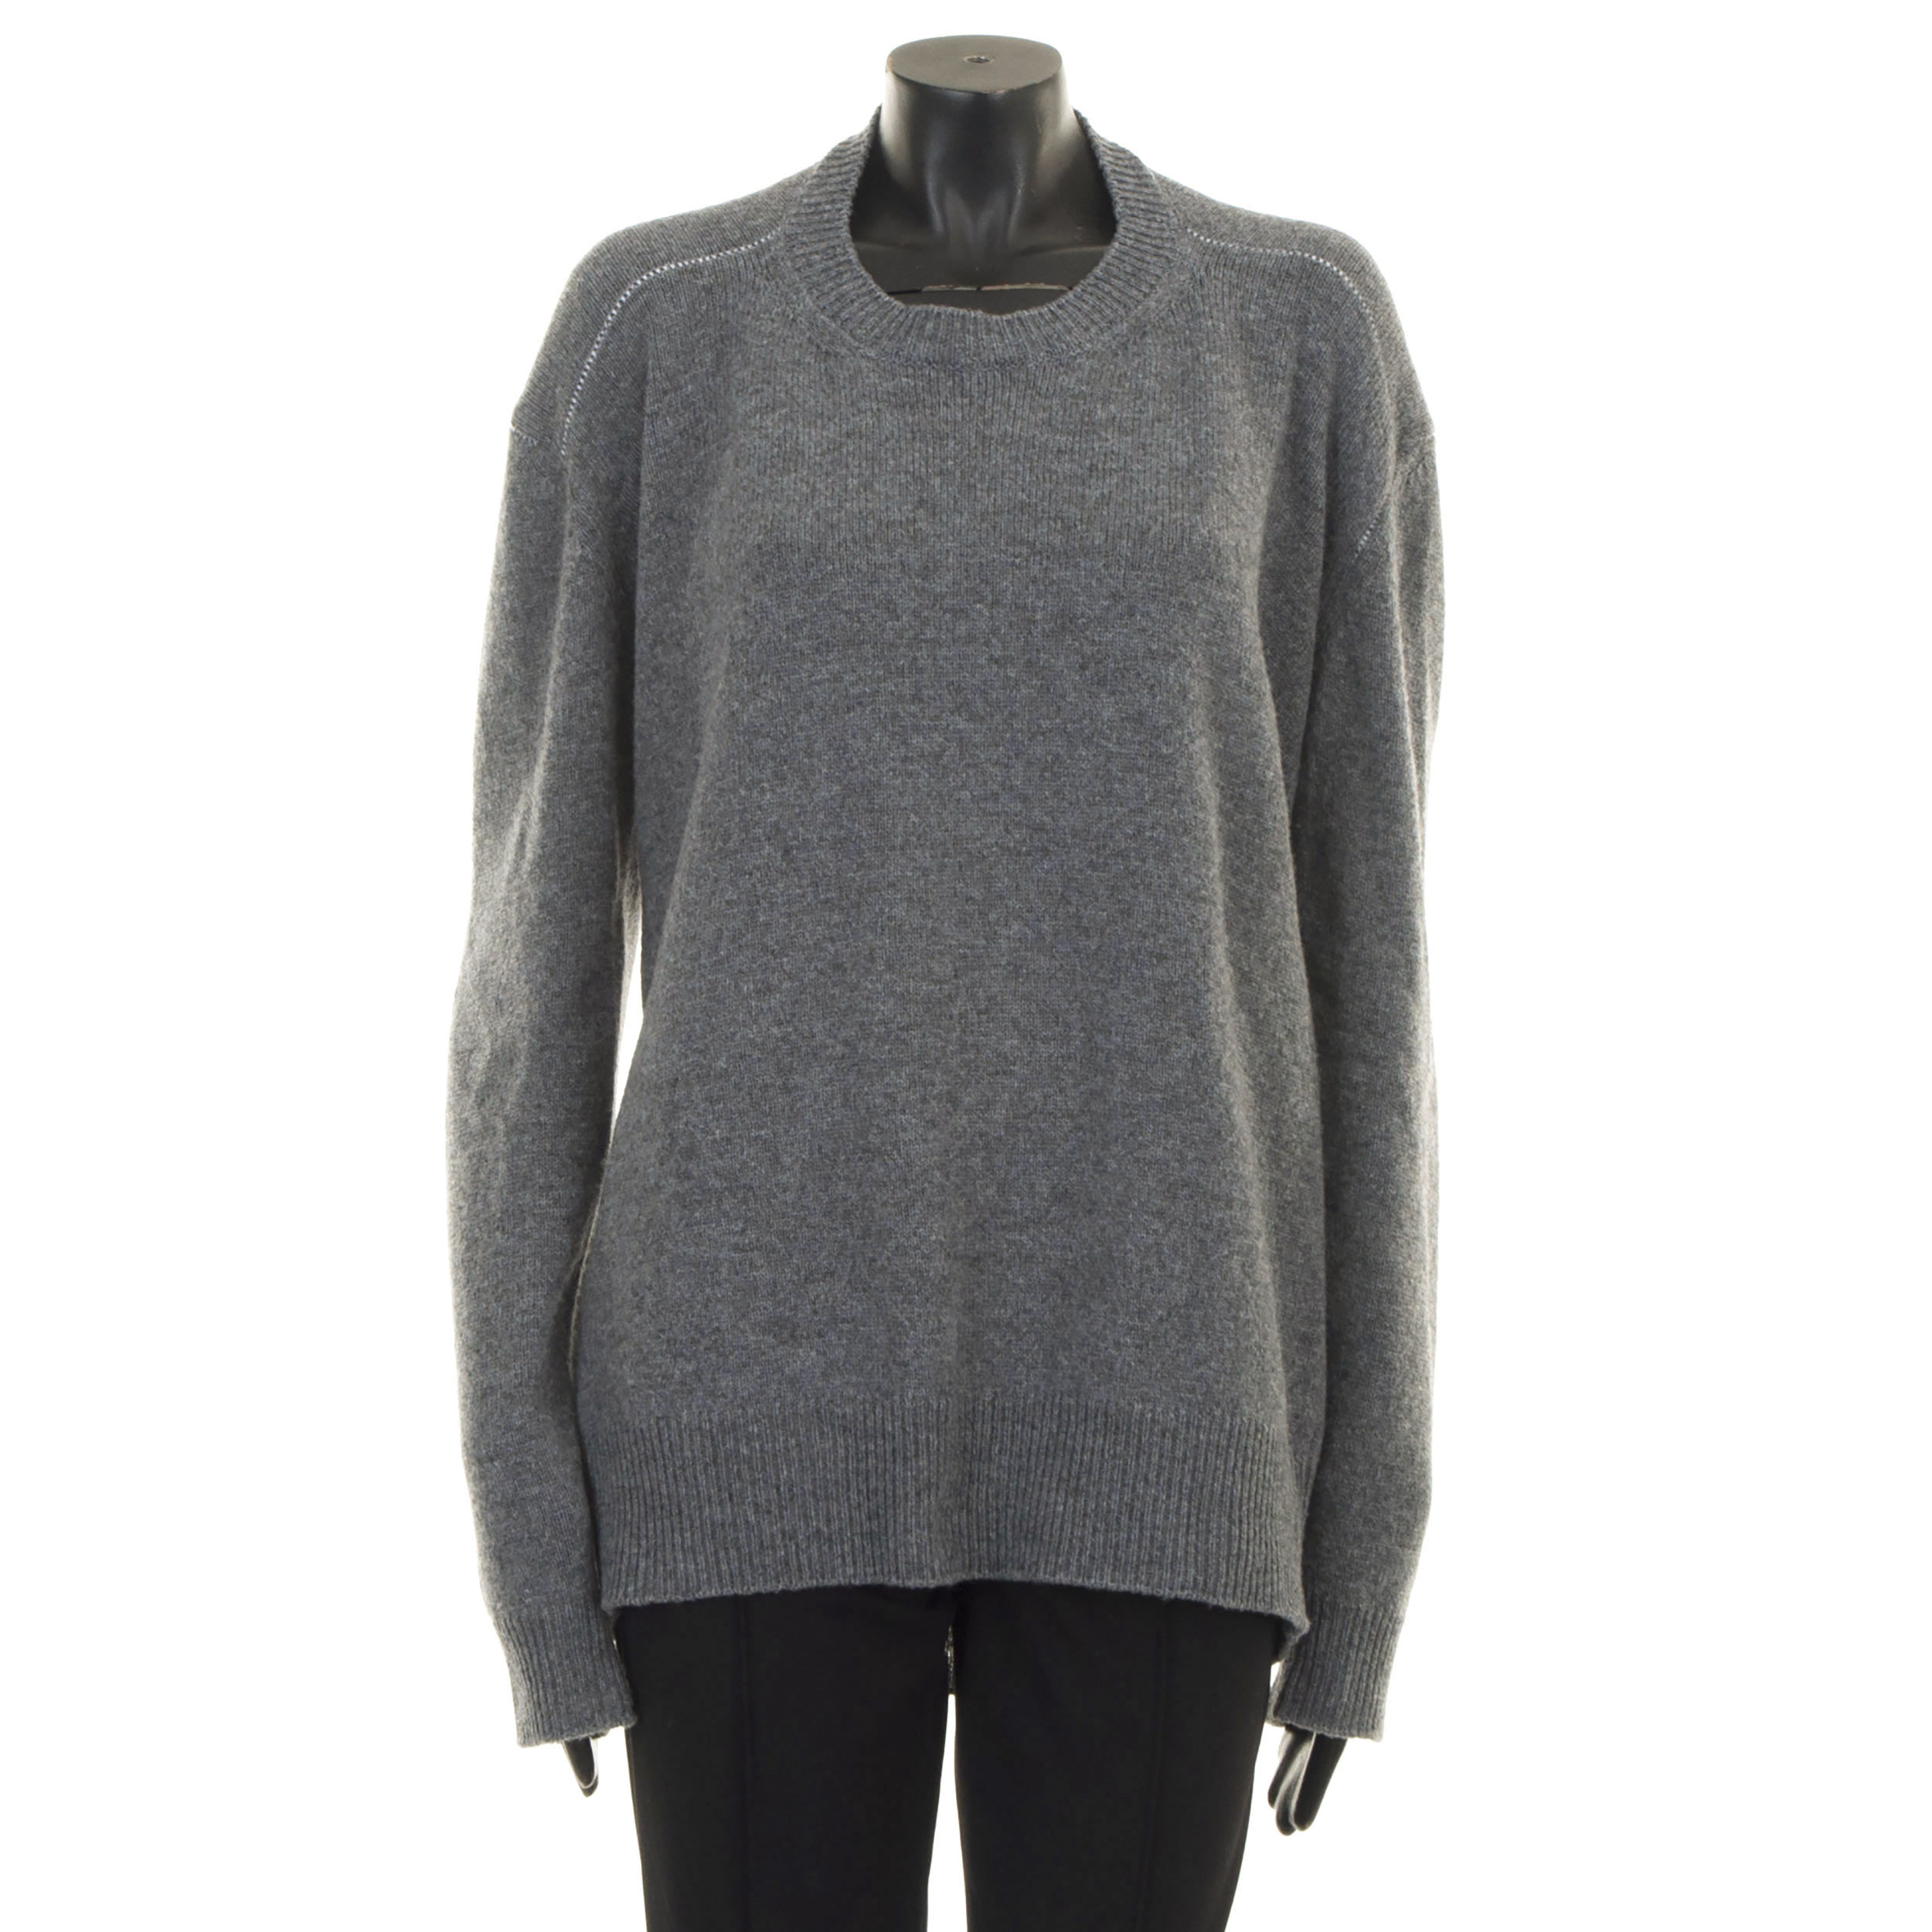 Details about CELINE by Phoebe Philo 940$ New Crew Neck Sweater In Seamless Gray Wool